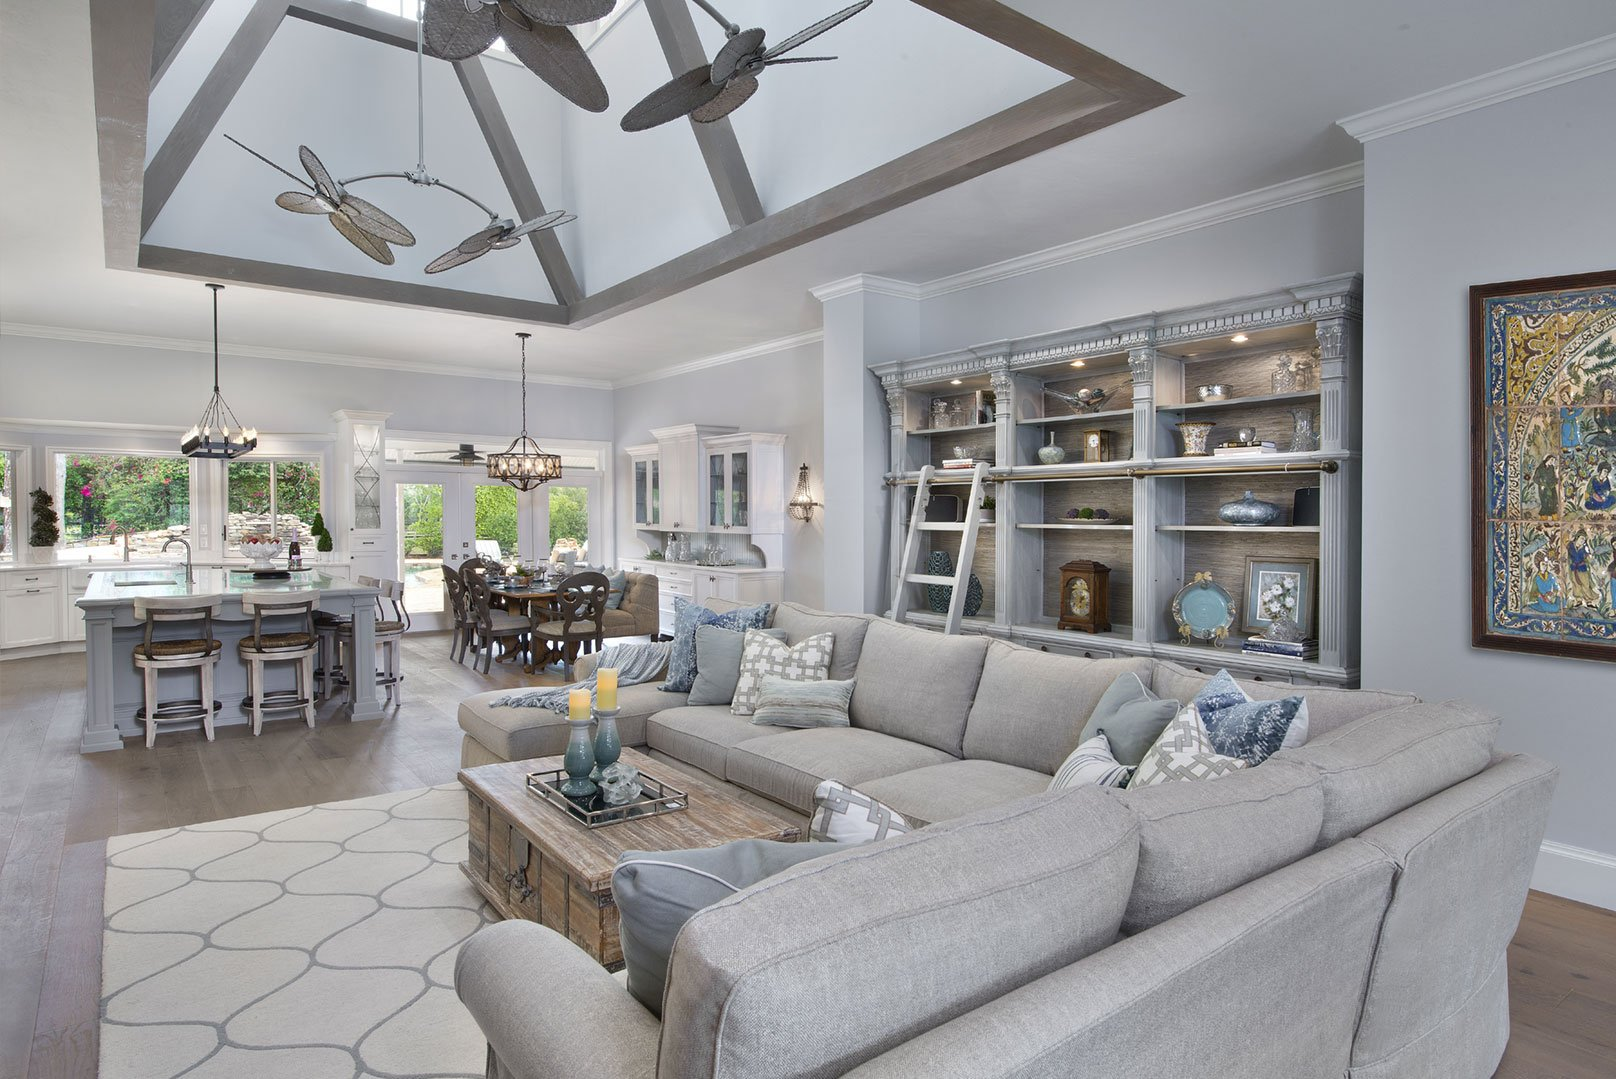 FarmhouseFlair-GreatRoom Redesigning A Master Bathroom on designing a master bathroom, renovating a master bathroom, redoing a master bathroom, organizing a master bathroom, remodeling a master bathroom, updating a master bathroom,